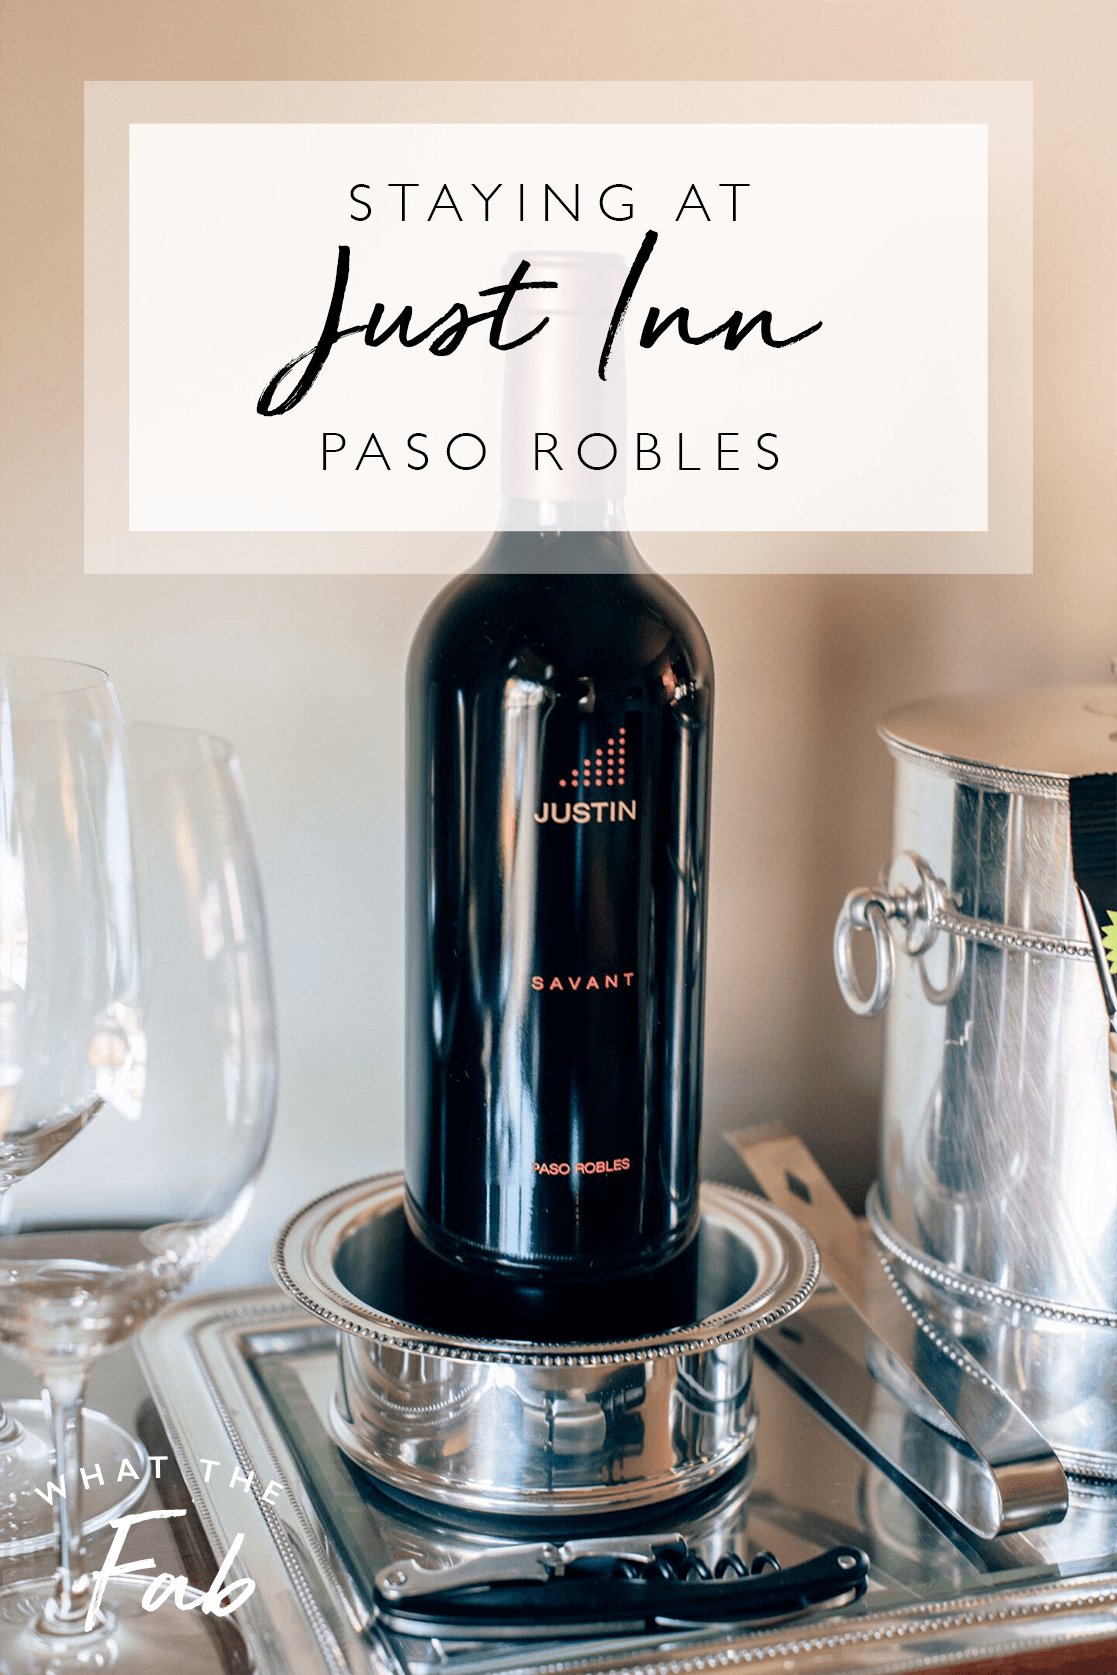 JUST Inn in Paso Robles, by Travel Blogger What The Fab